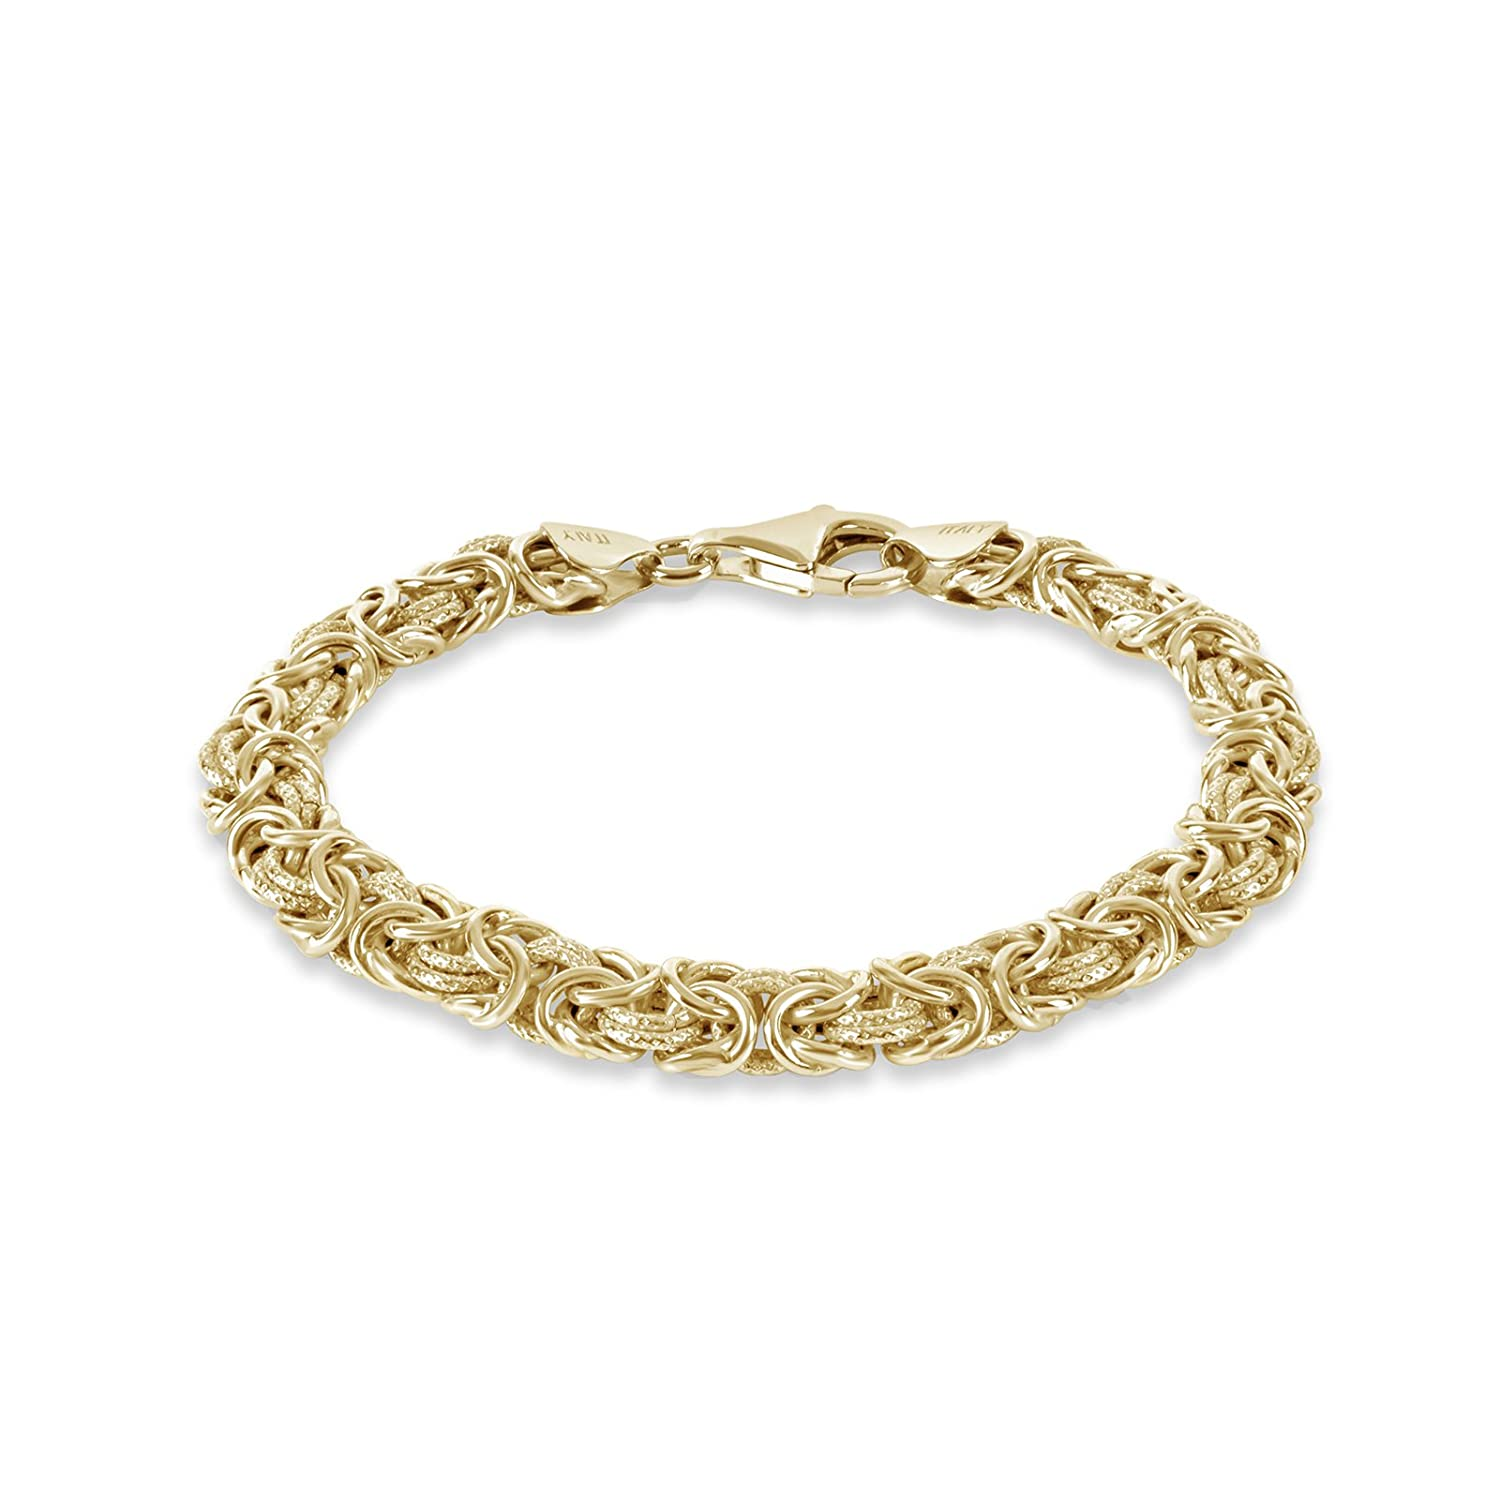 c5044476df3d1 Amazon.com: 18k Gold Over Sterling Silver Textured Byzantine ...